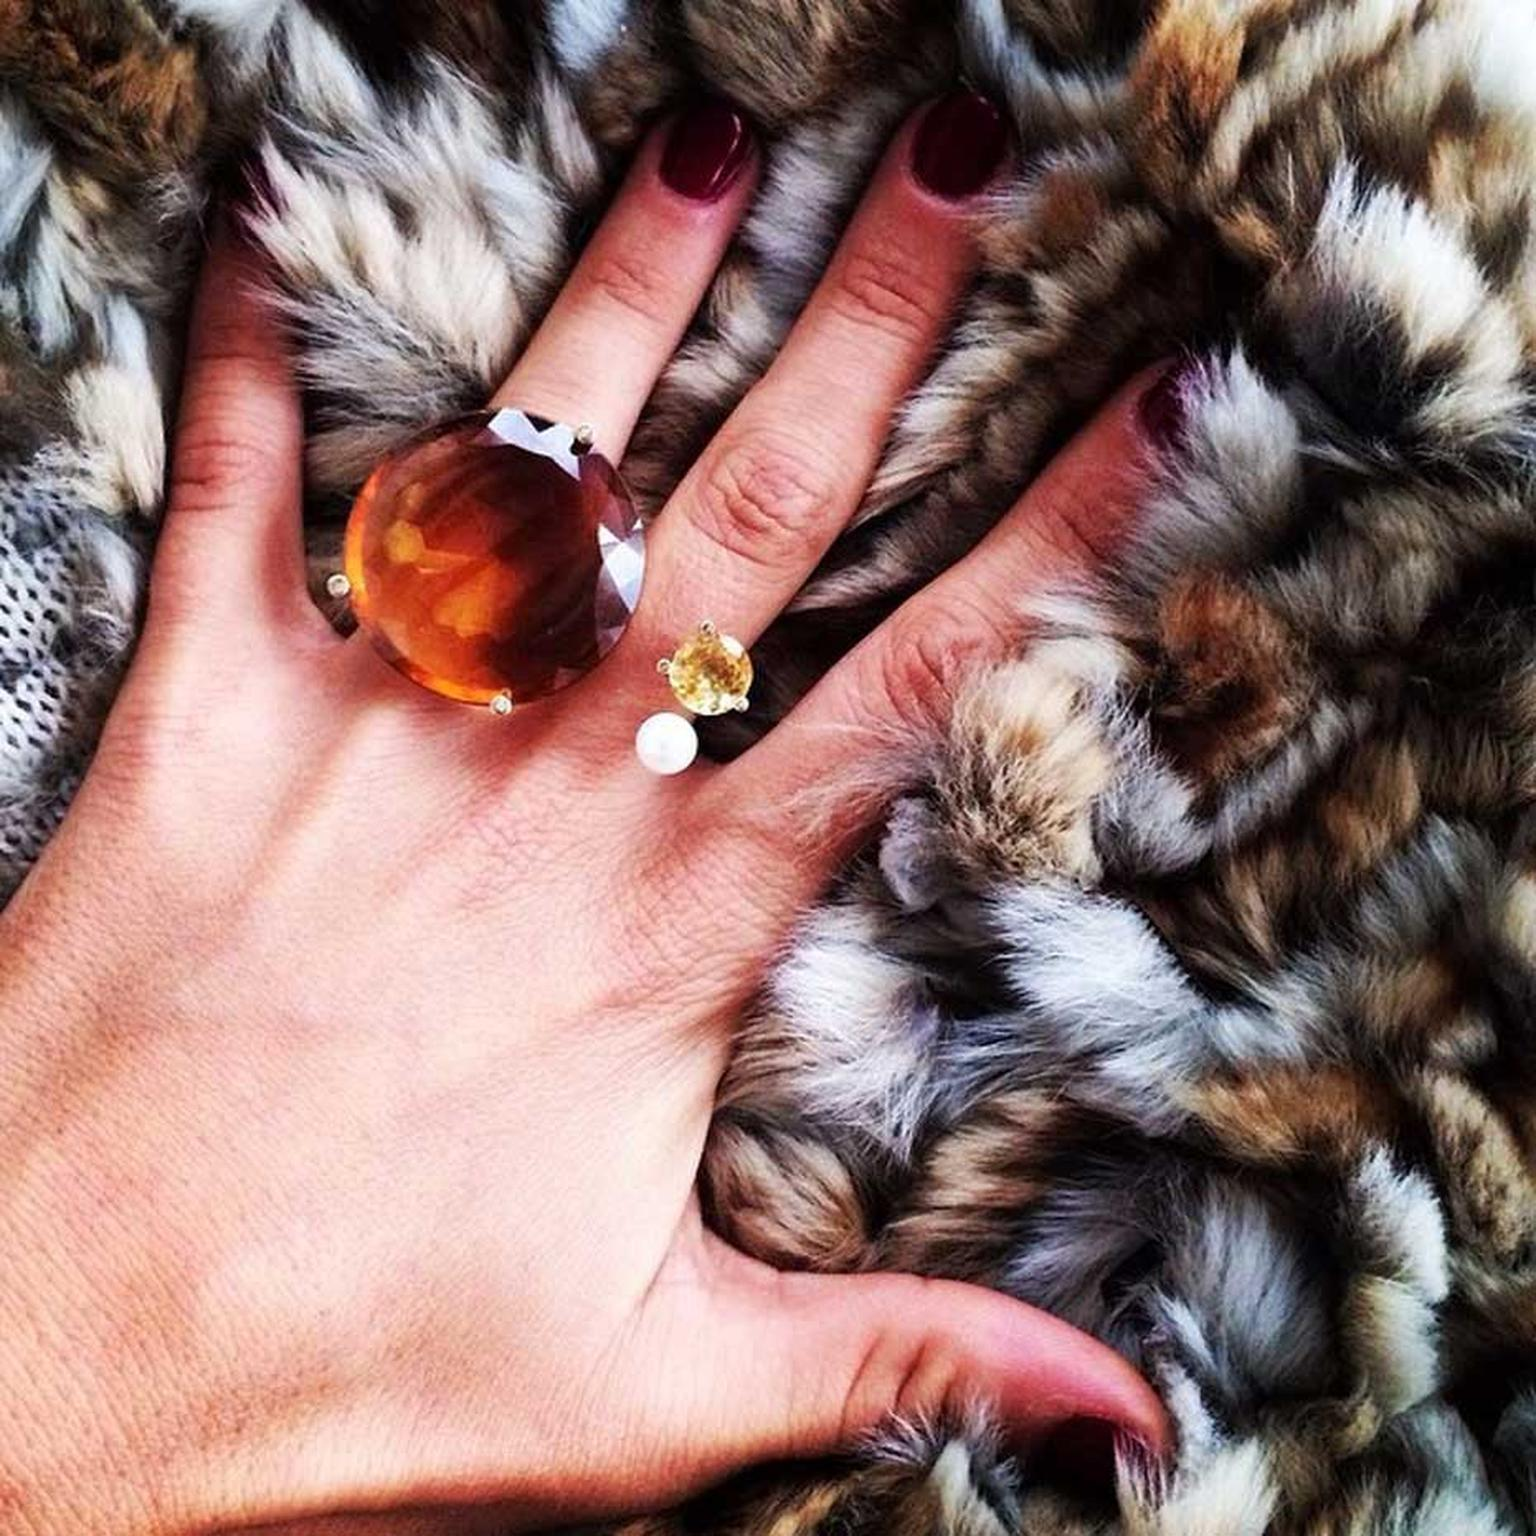 Italian jewellery designer Delfina Delettrez regularly shares snaps of her unique and colourful jewellery on Instagram. Image: @delfinadelettrez Instagram